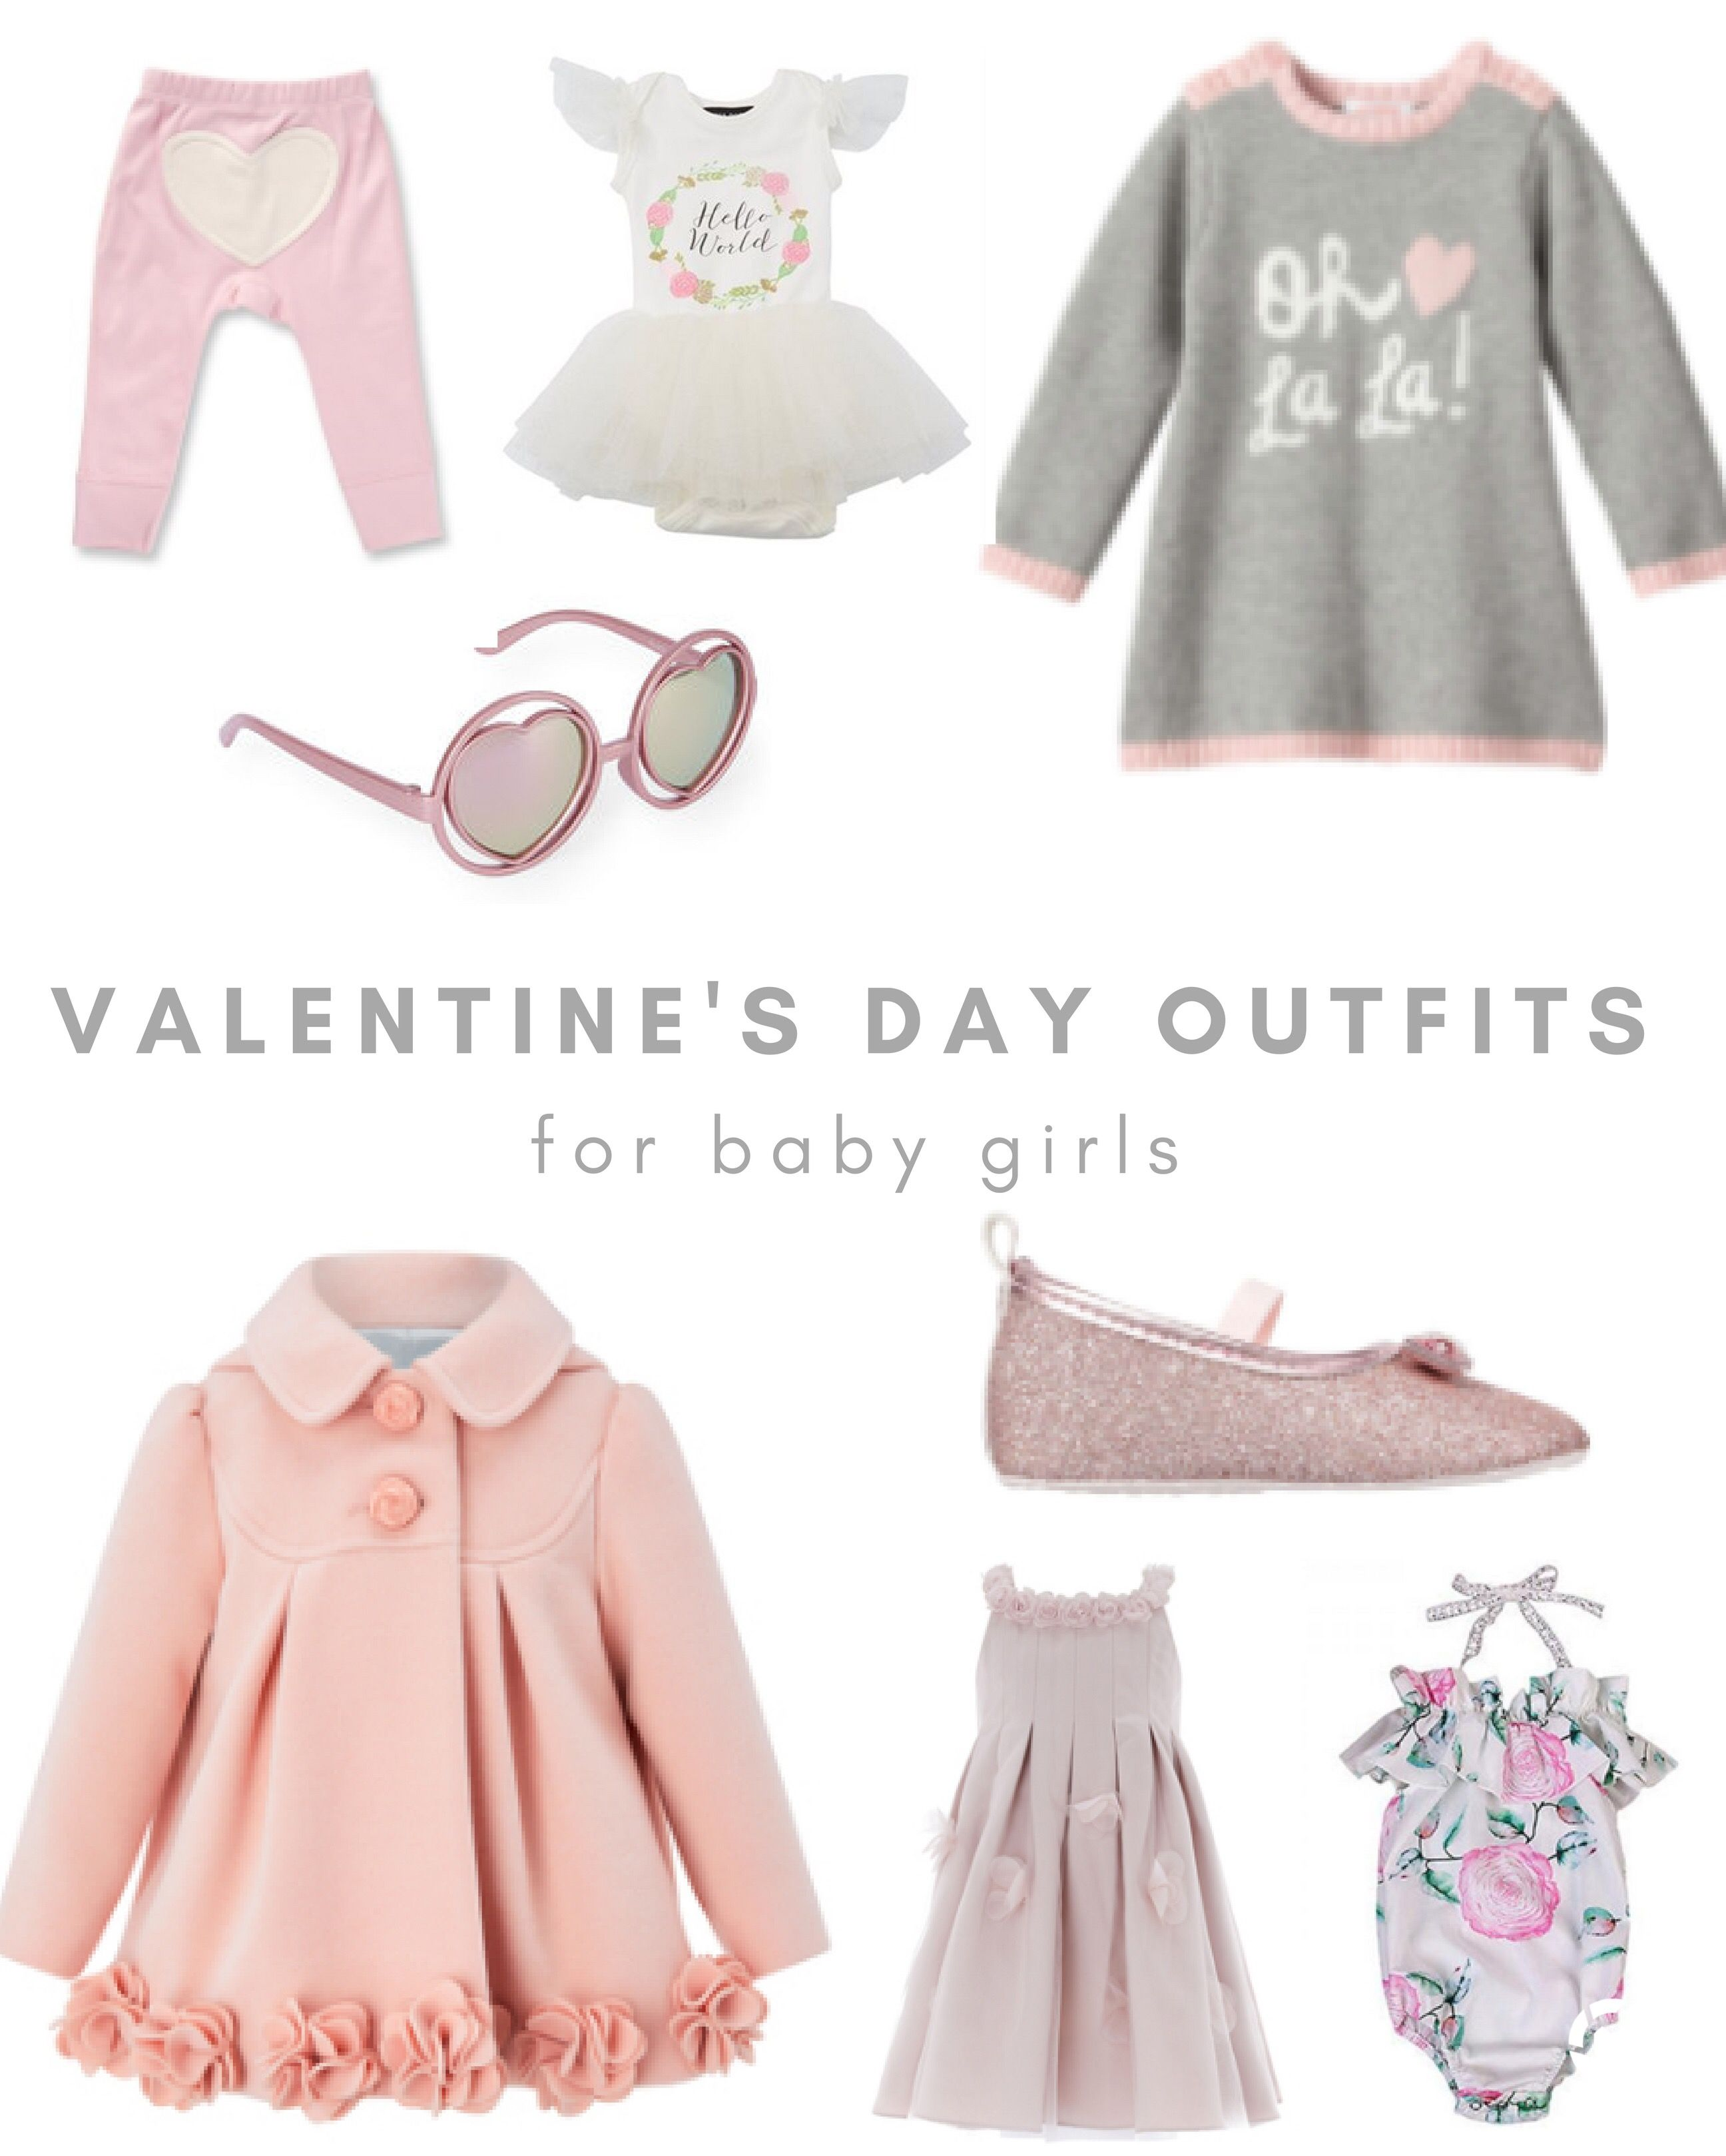 7f22c3e841bdd Cute Valentines Dat outfits for baby and toddler girls - Valentine s Day  outfits including heart-shaped sunglasses